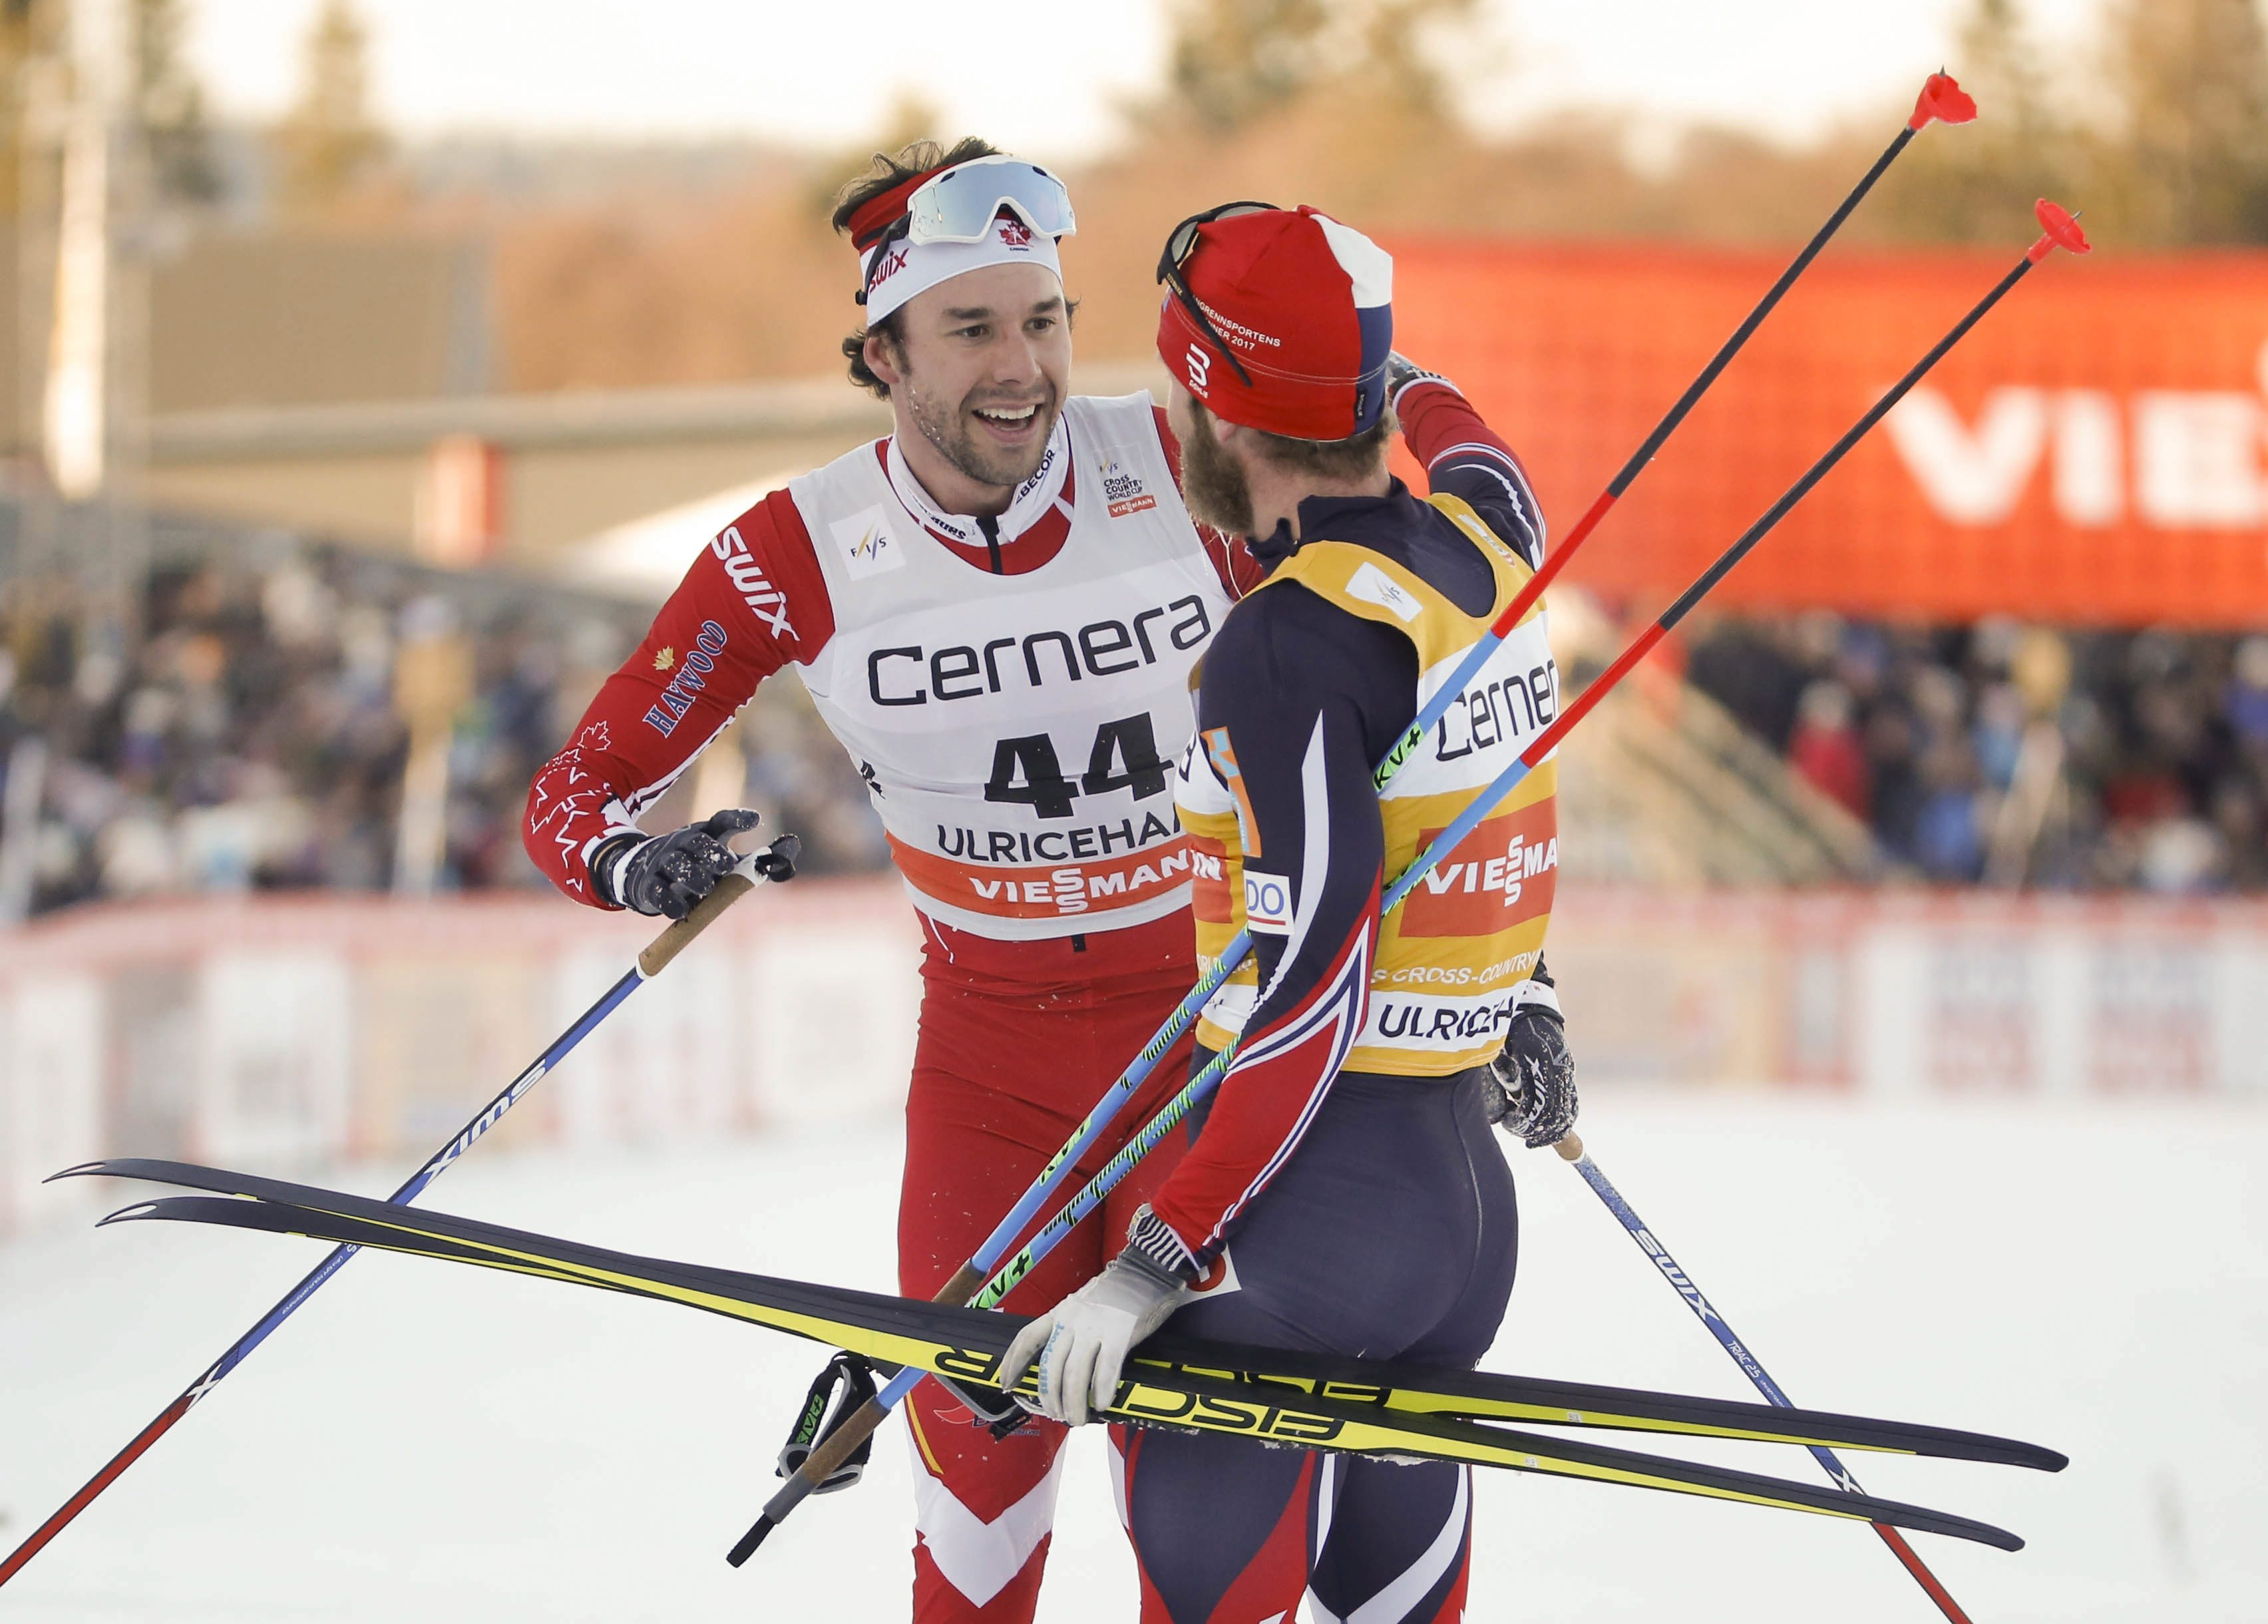 Alex Harvey of Canada, left, is congratulated by Norway's Martin Johnsrud Sundby after winning the men's 15km free style competition at the FIS Cross Country skiing World Cup event in Ulricehamn, Sweden, Saturday Jan. 21, 2017. (Adam Ihse / TT via AP)